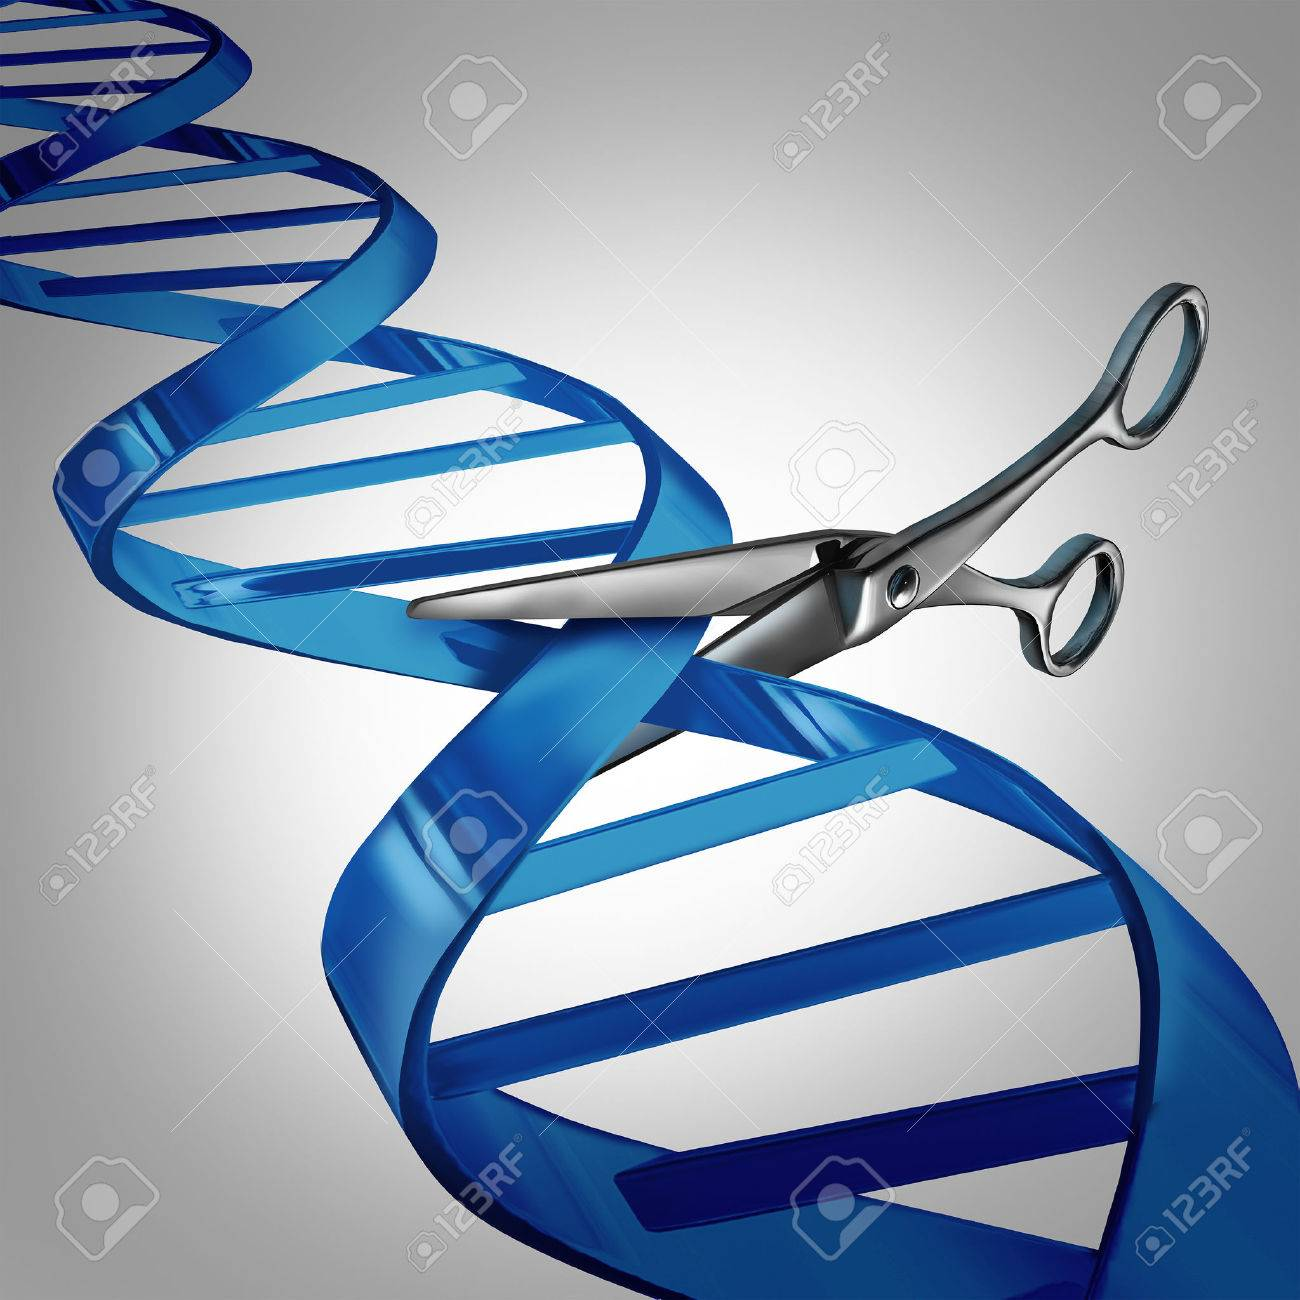 Gene editing health care concept as molecular scissors cutting a dna strand as a medical science and biology technology symbol for changing genetic material to help cure disease. - 44009926